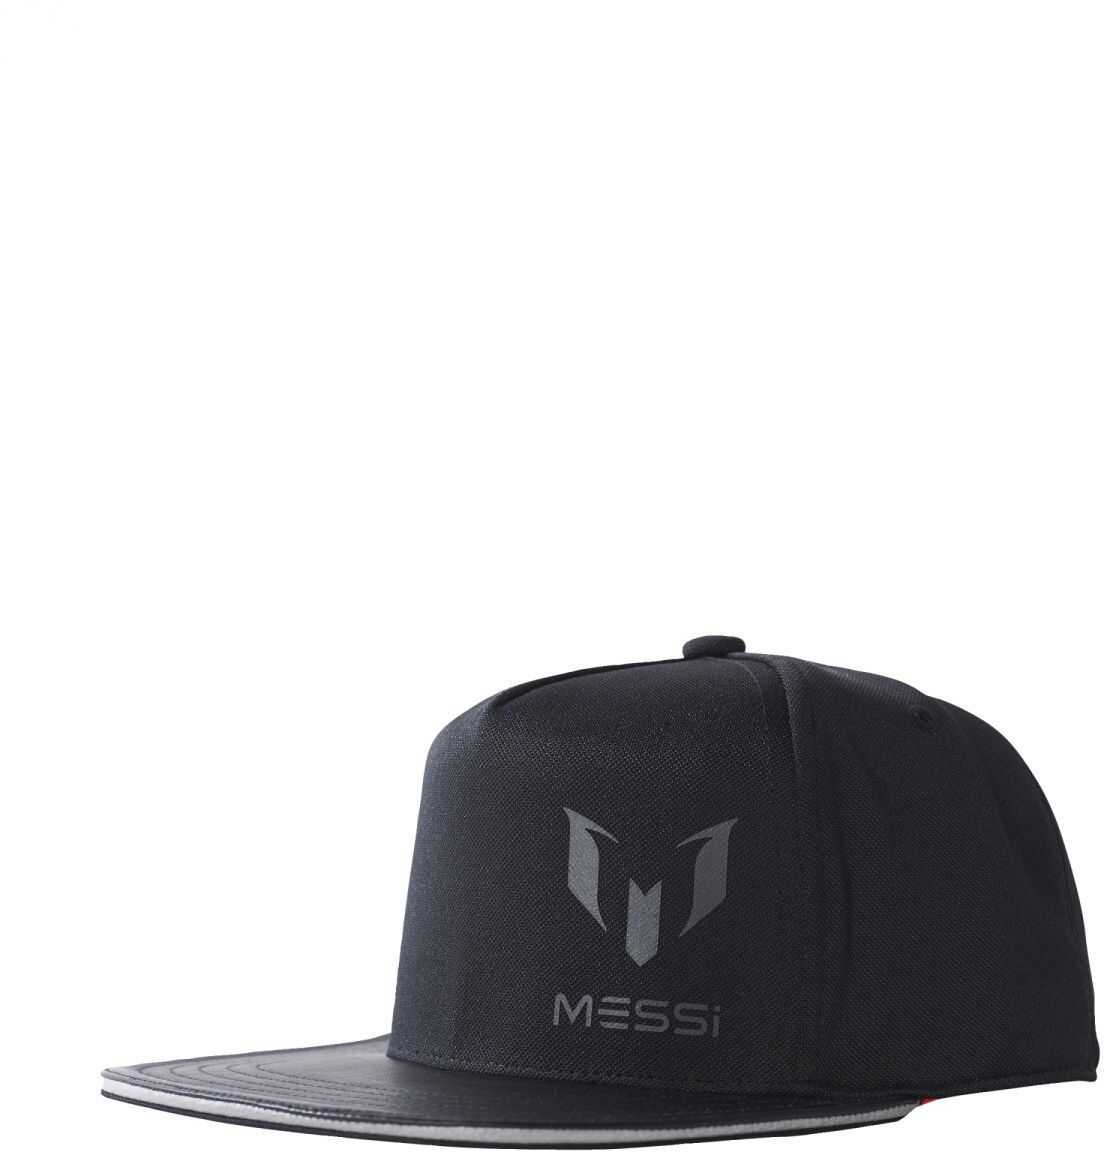 adidas MESSI KIDS CAP BLACK/SOLRED